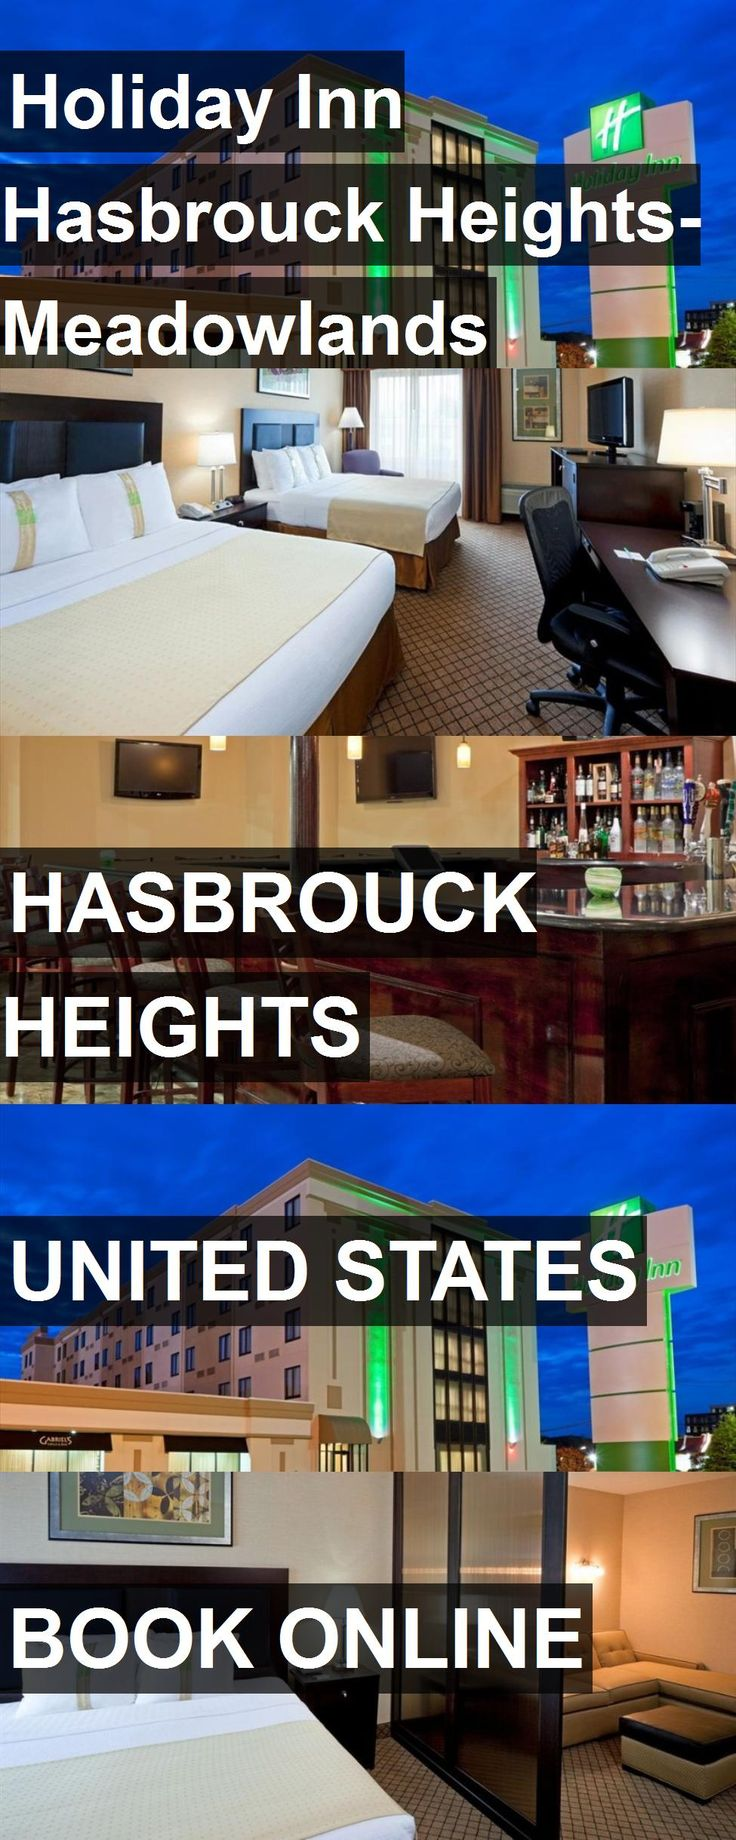 Hotel Holiday Inn Hasbrouck Heights-Meadowlands in Hasbrouck Heights, United States. For more information, photos, reviews and best prices please follow the link. #UnitedStates #HasbrouckHeights #travel #vacation #hotel